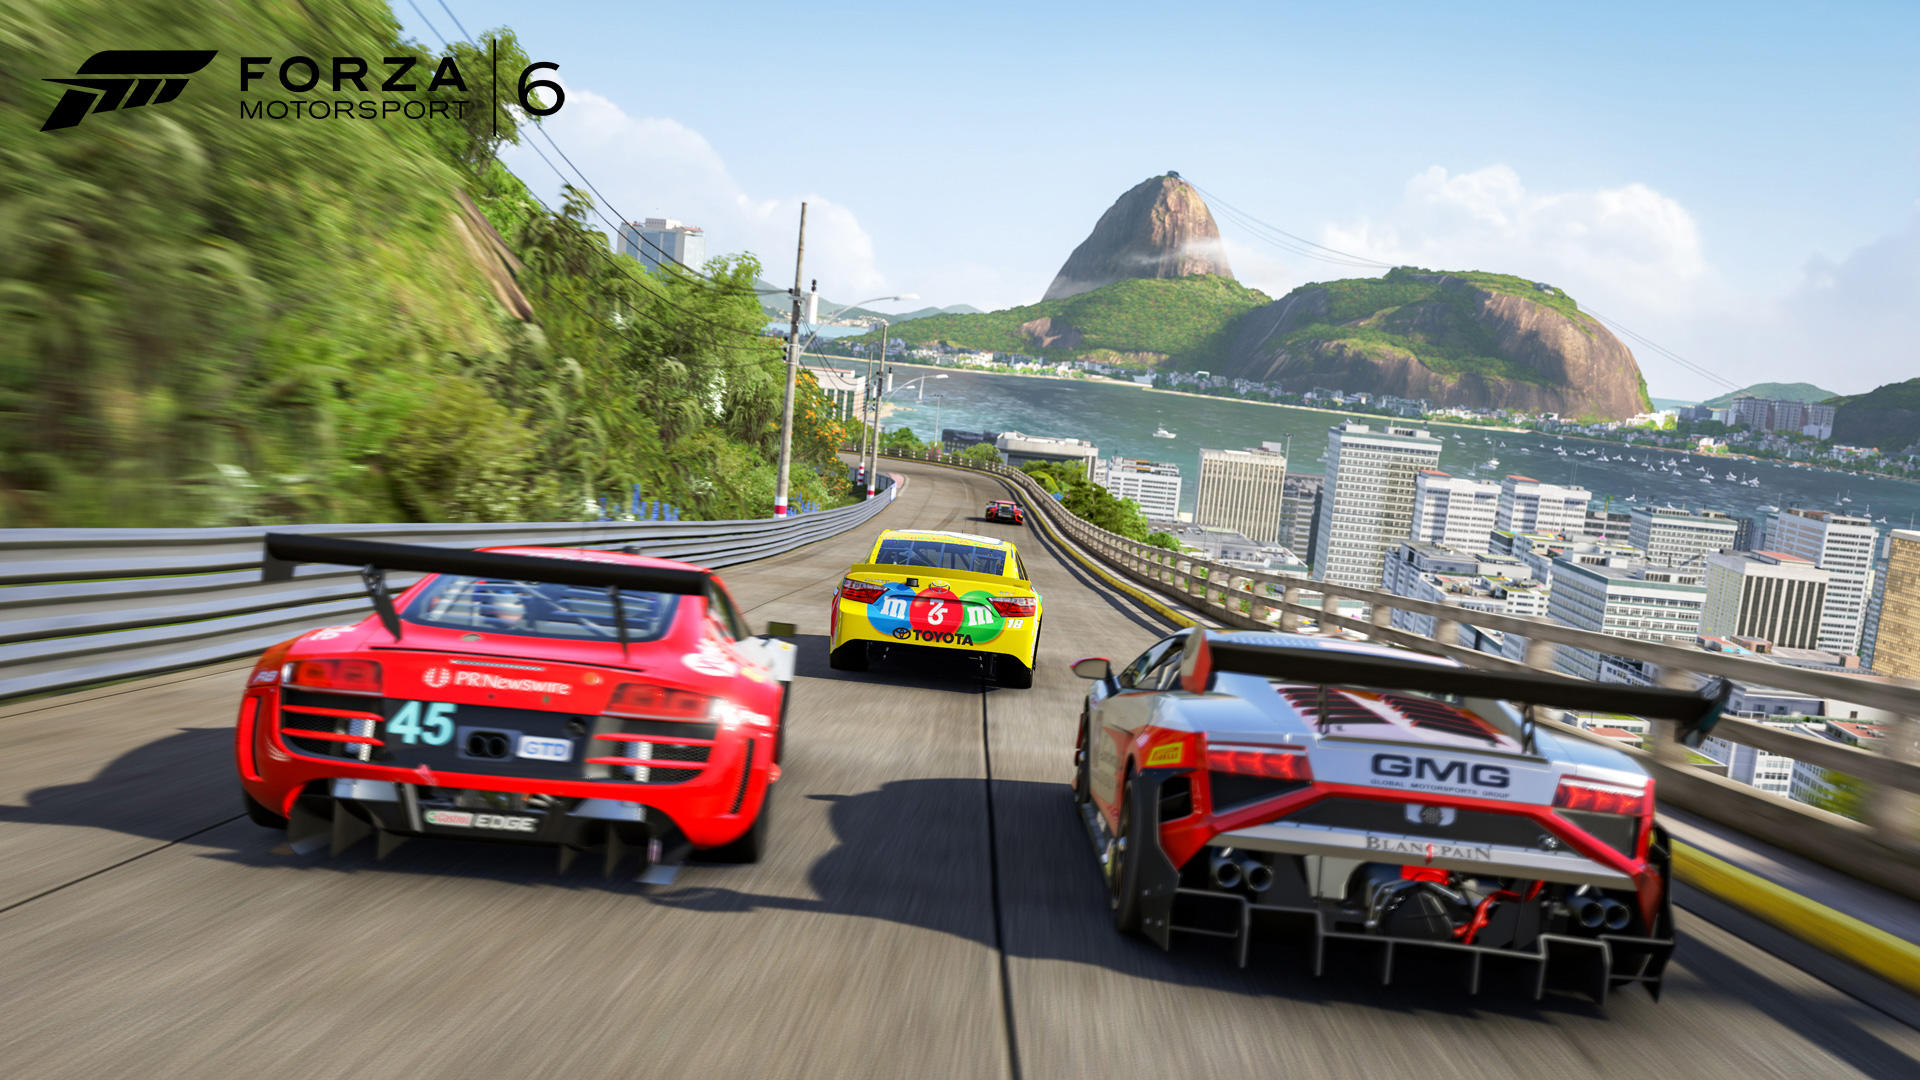 Forza Horizon 3 Wallpaper Hd Forza Motorsport Forza Motorsport 6 May Content Update